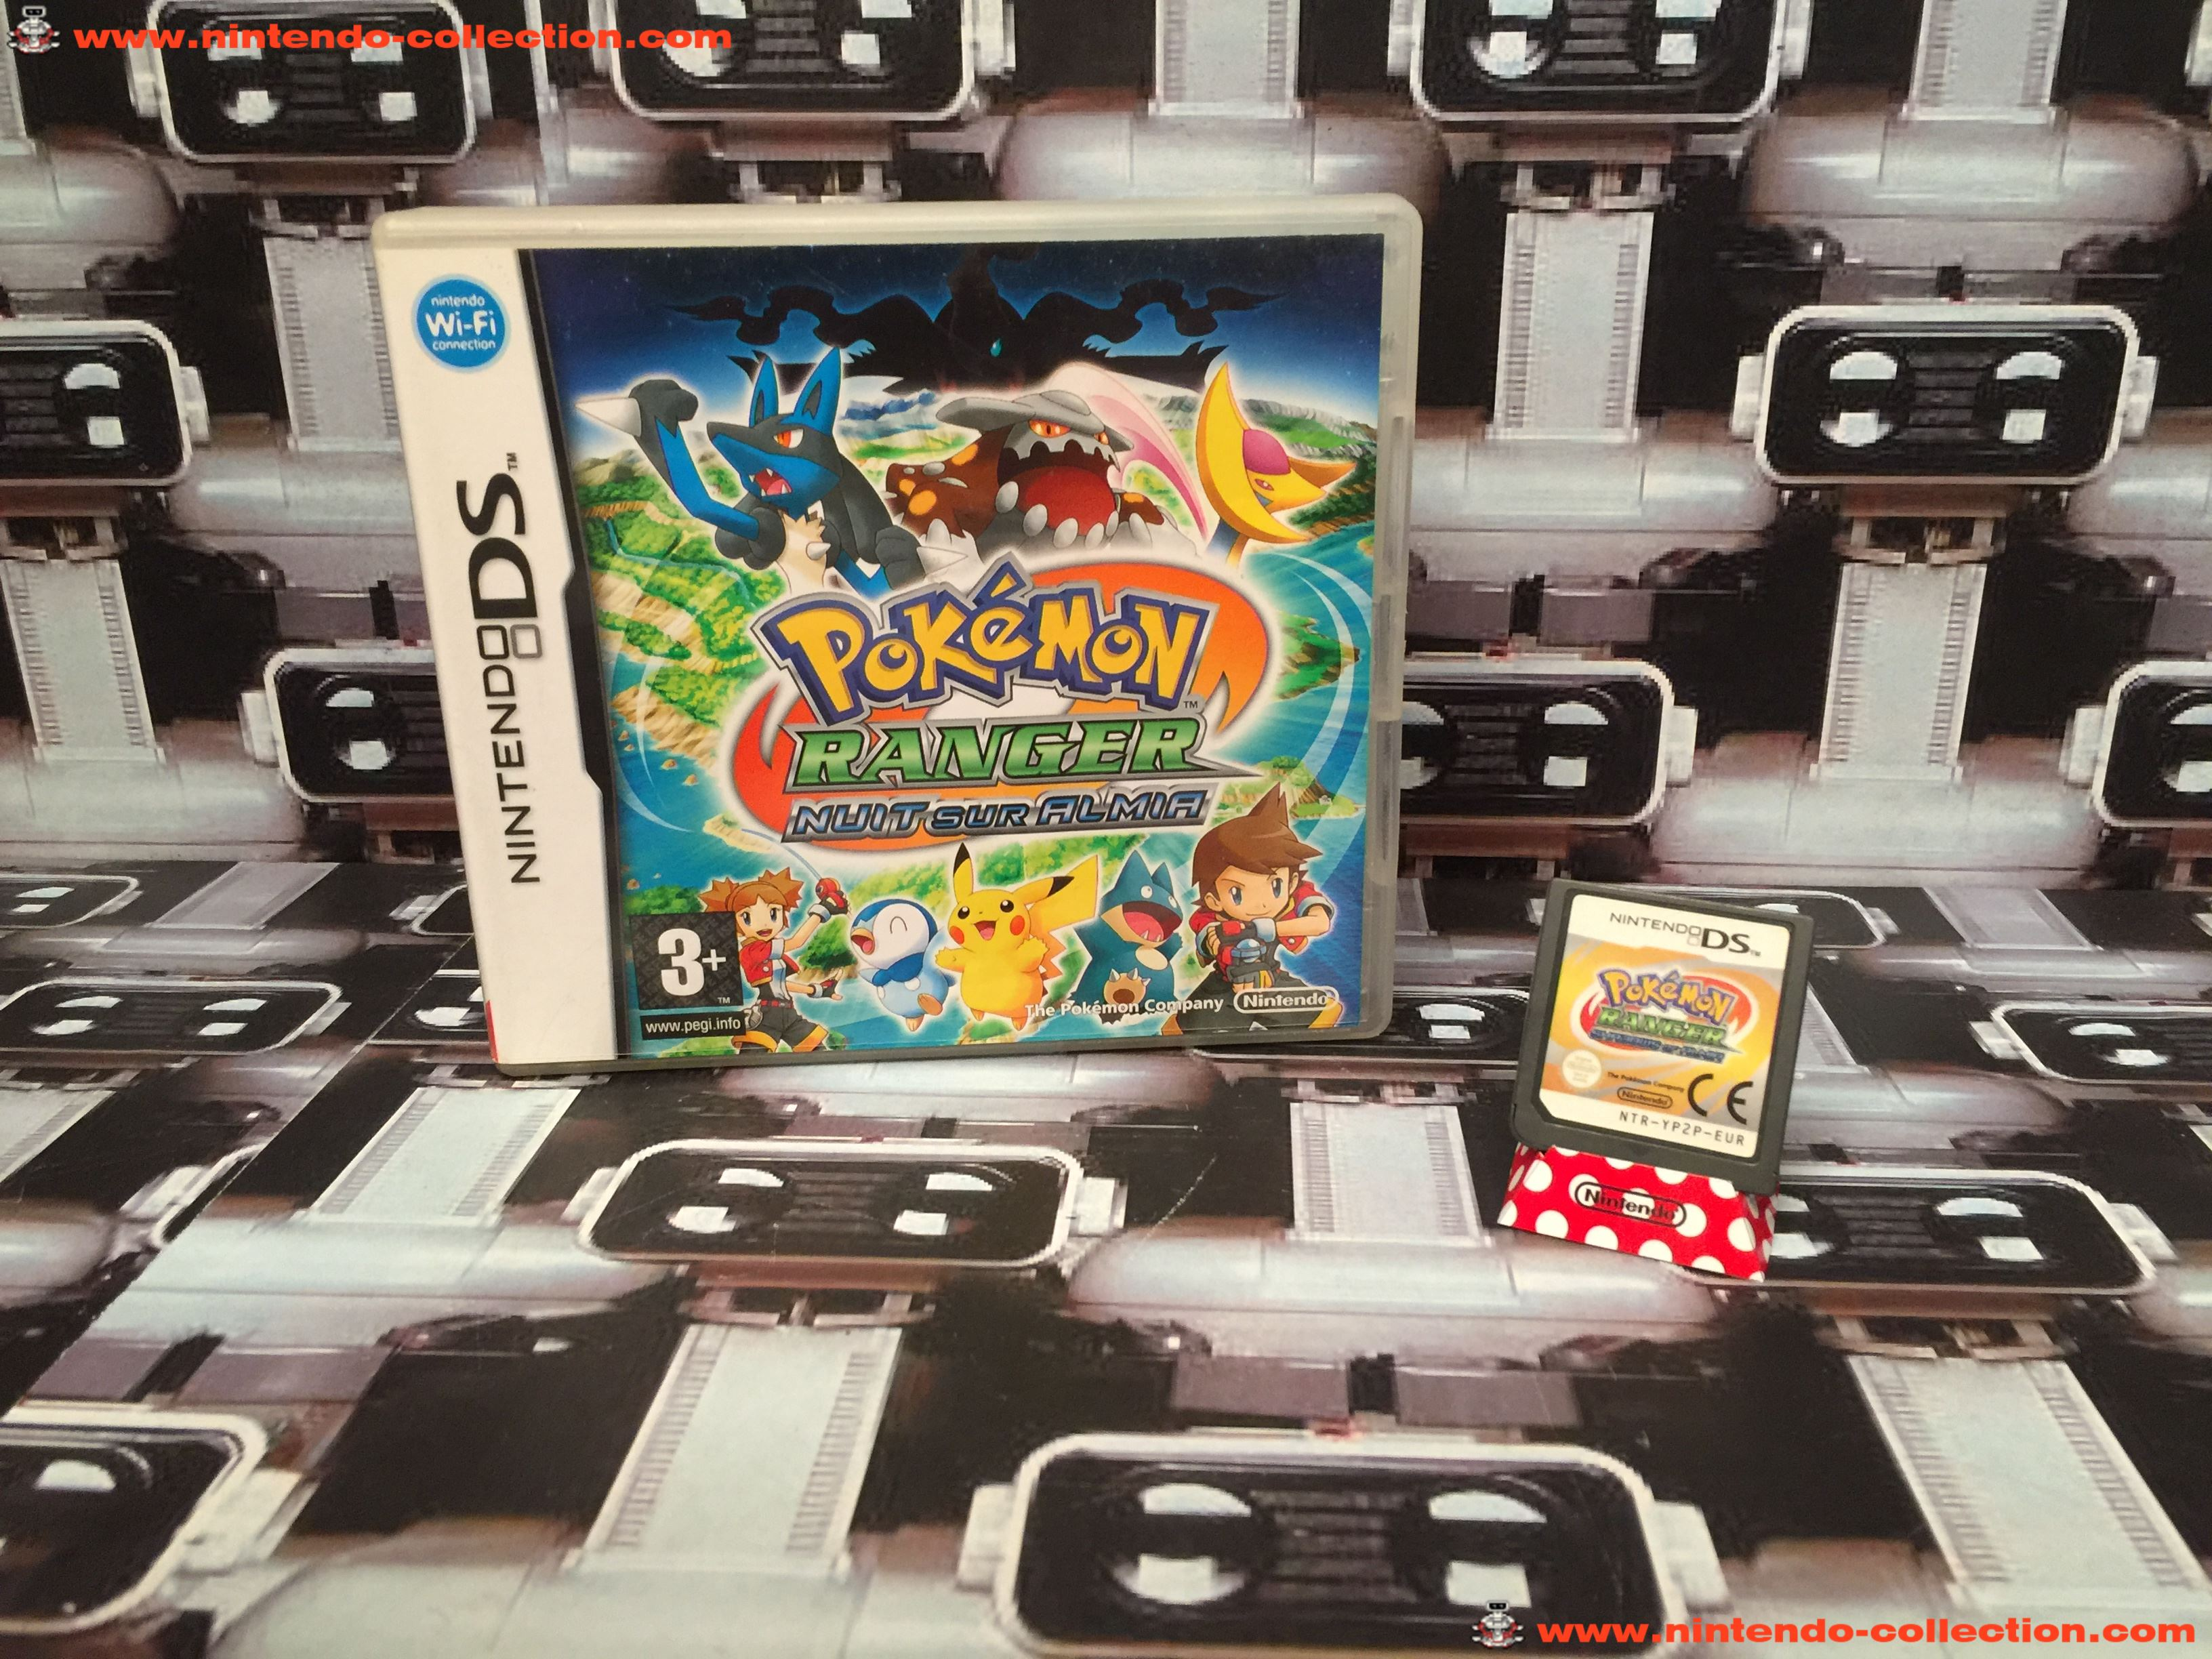 www.nintendo-collection.com - Nintendo DS Jeux Game Pokemon Ranger Nuit sur Almia Euro